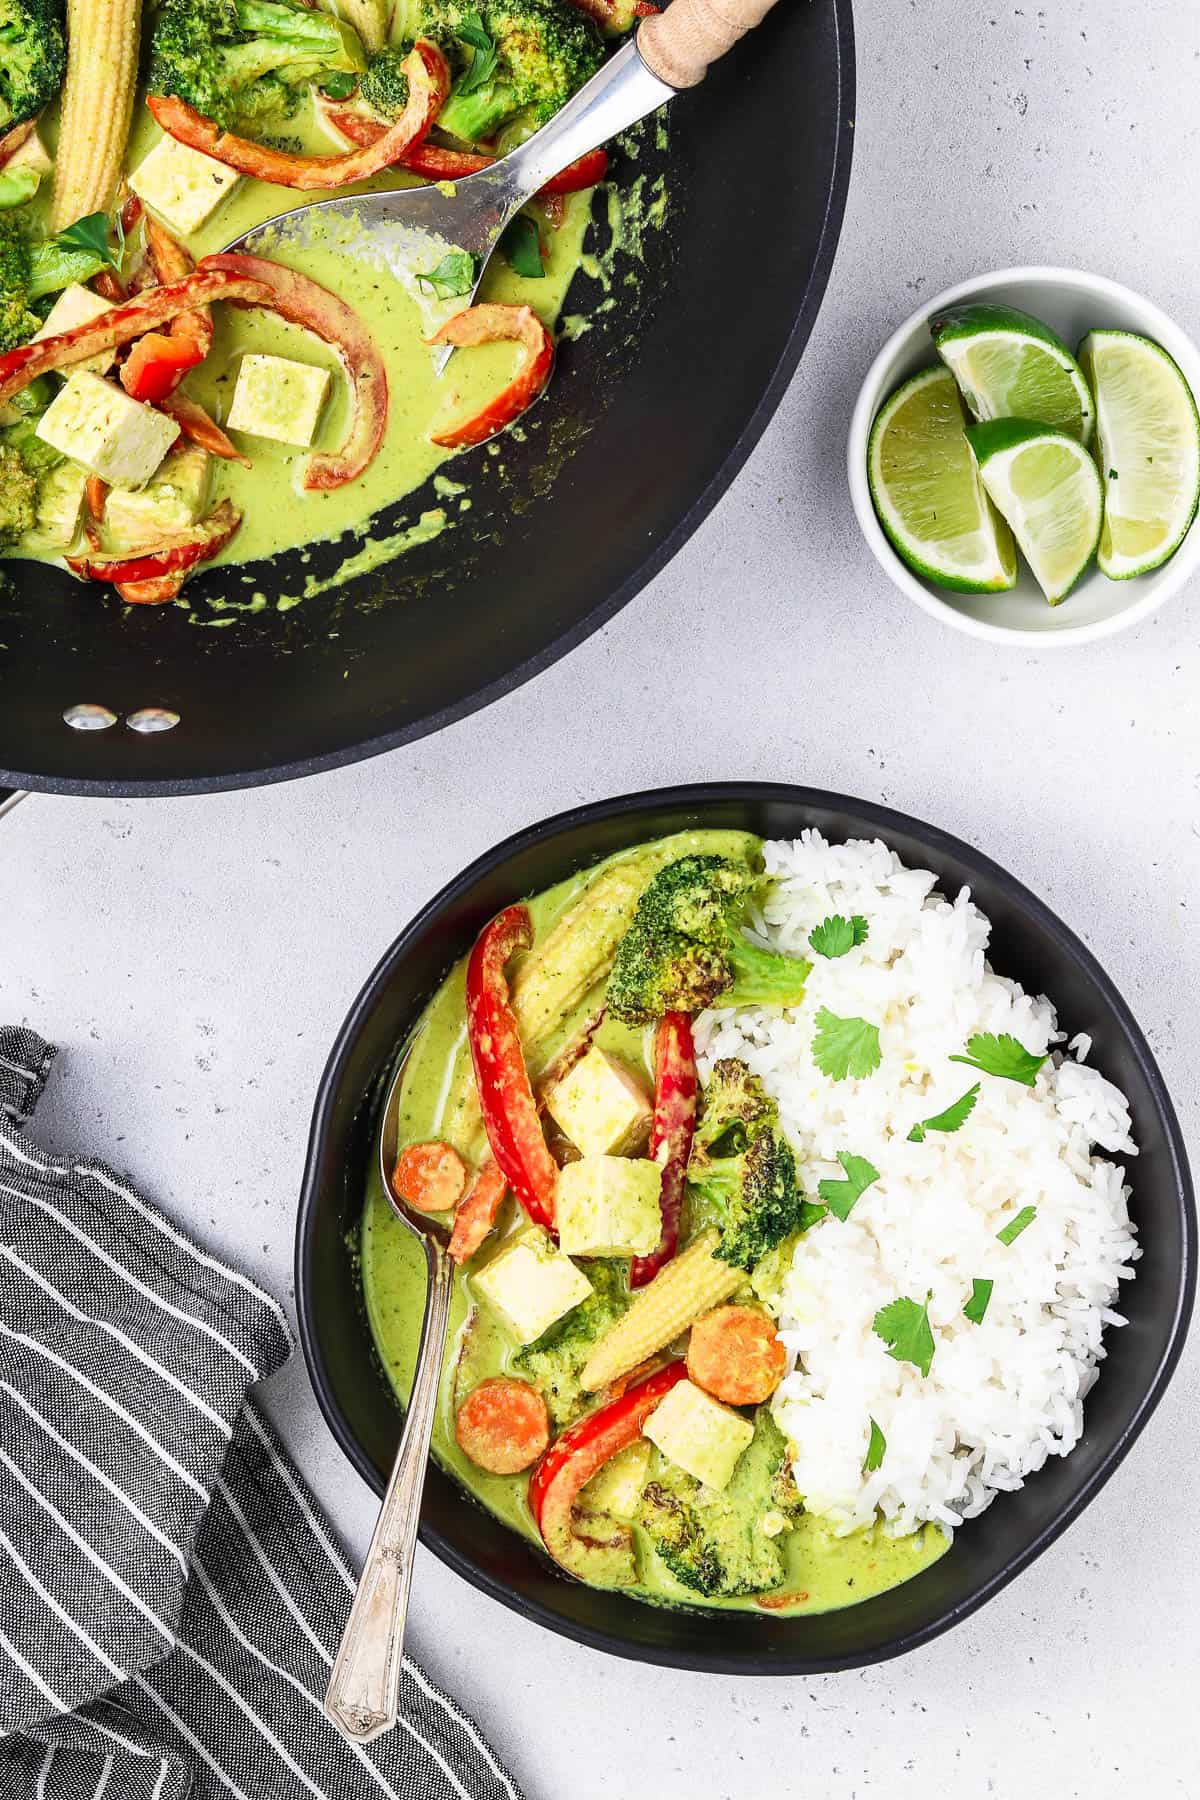 A bowl and wok filled with vegan Thai green curry. Striped napkin and lime on the side.